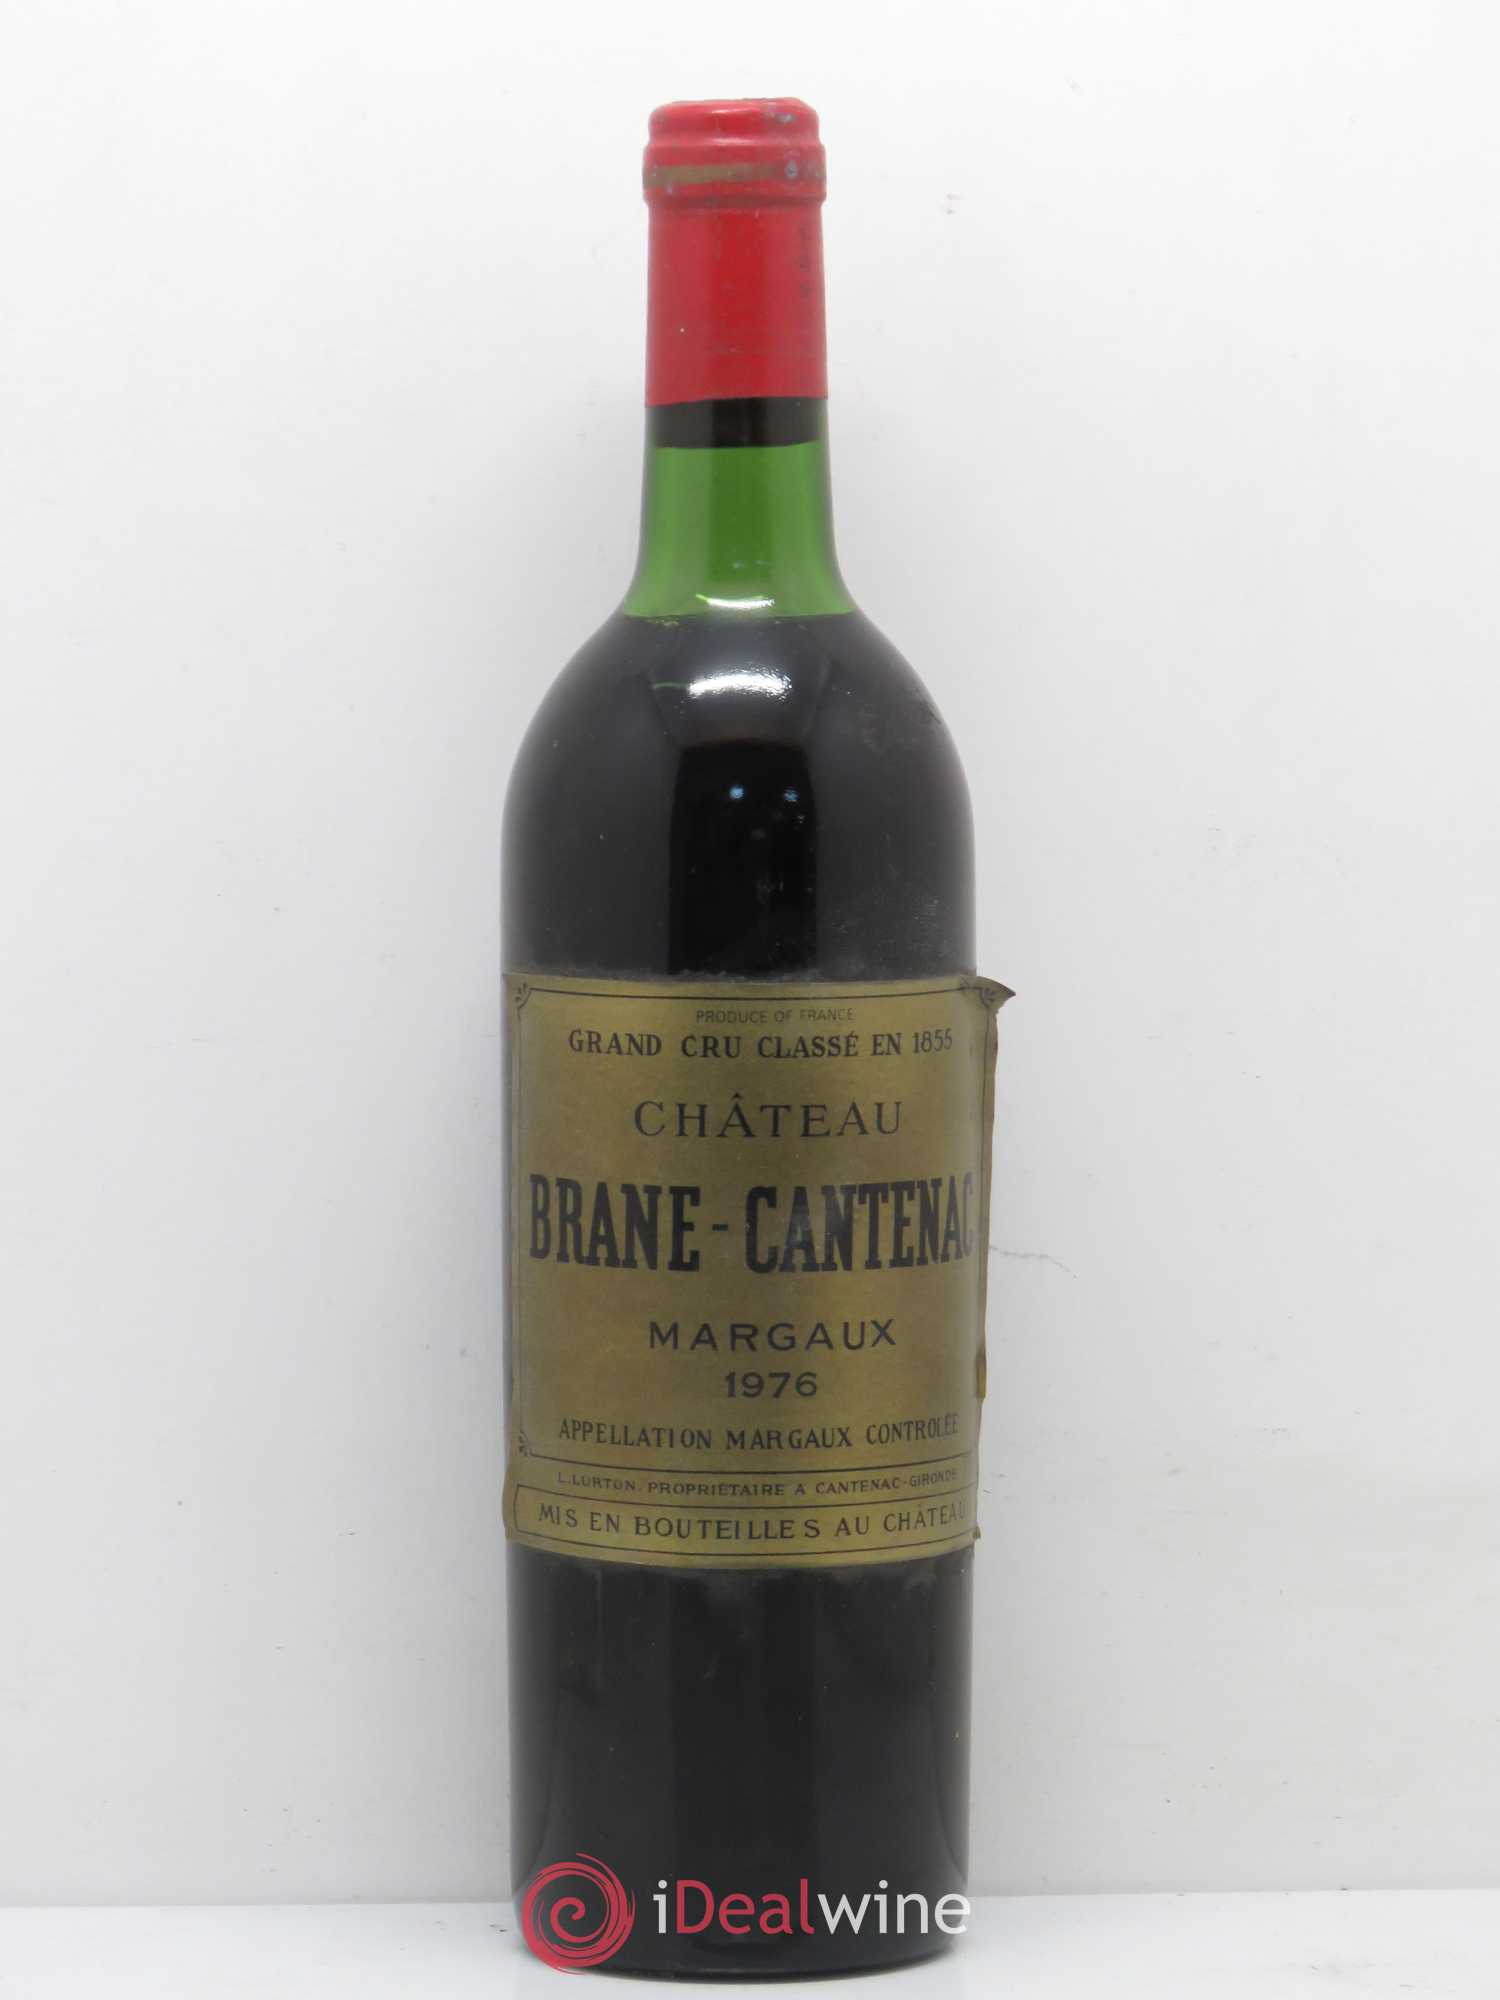 Château Brane Cantenac 2ème Grand Cru Classé  1976 - Lot of 1 Bottle